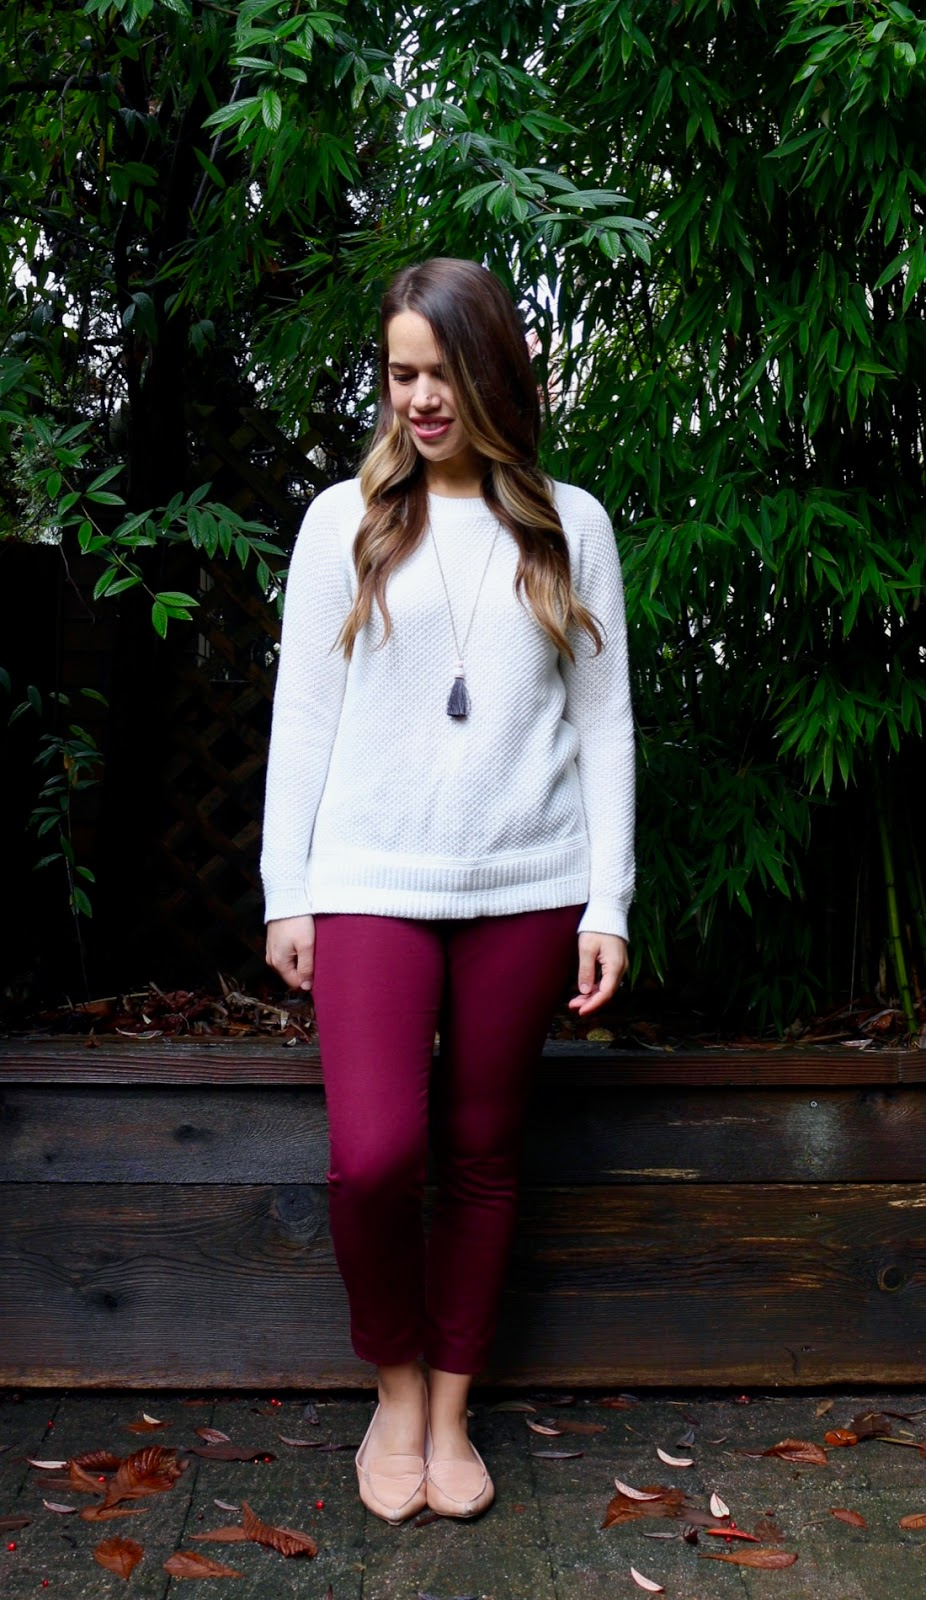 Jules in Flats - Old Navy Textured Crew Neck Sweater + Burgundy Ankle Pants (Business Casual Fall Workwear on a Budget)